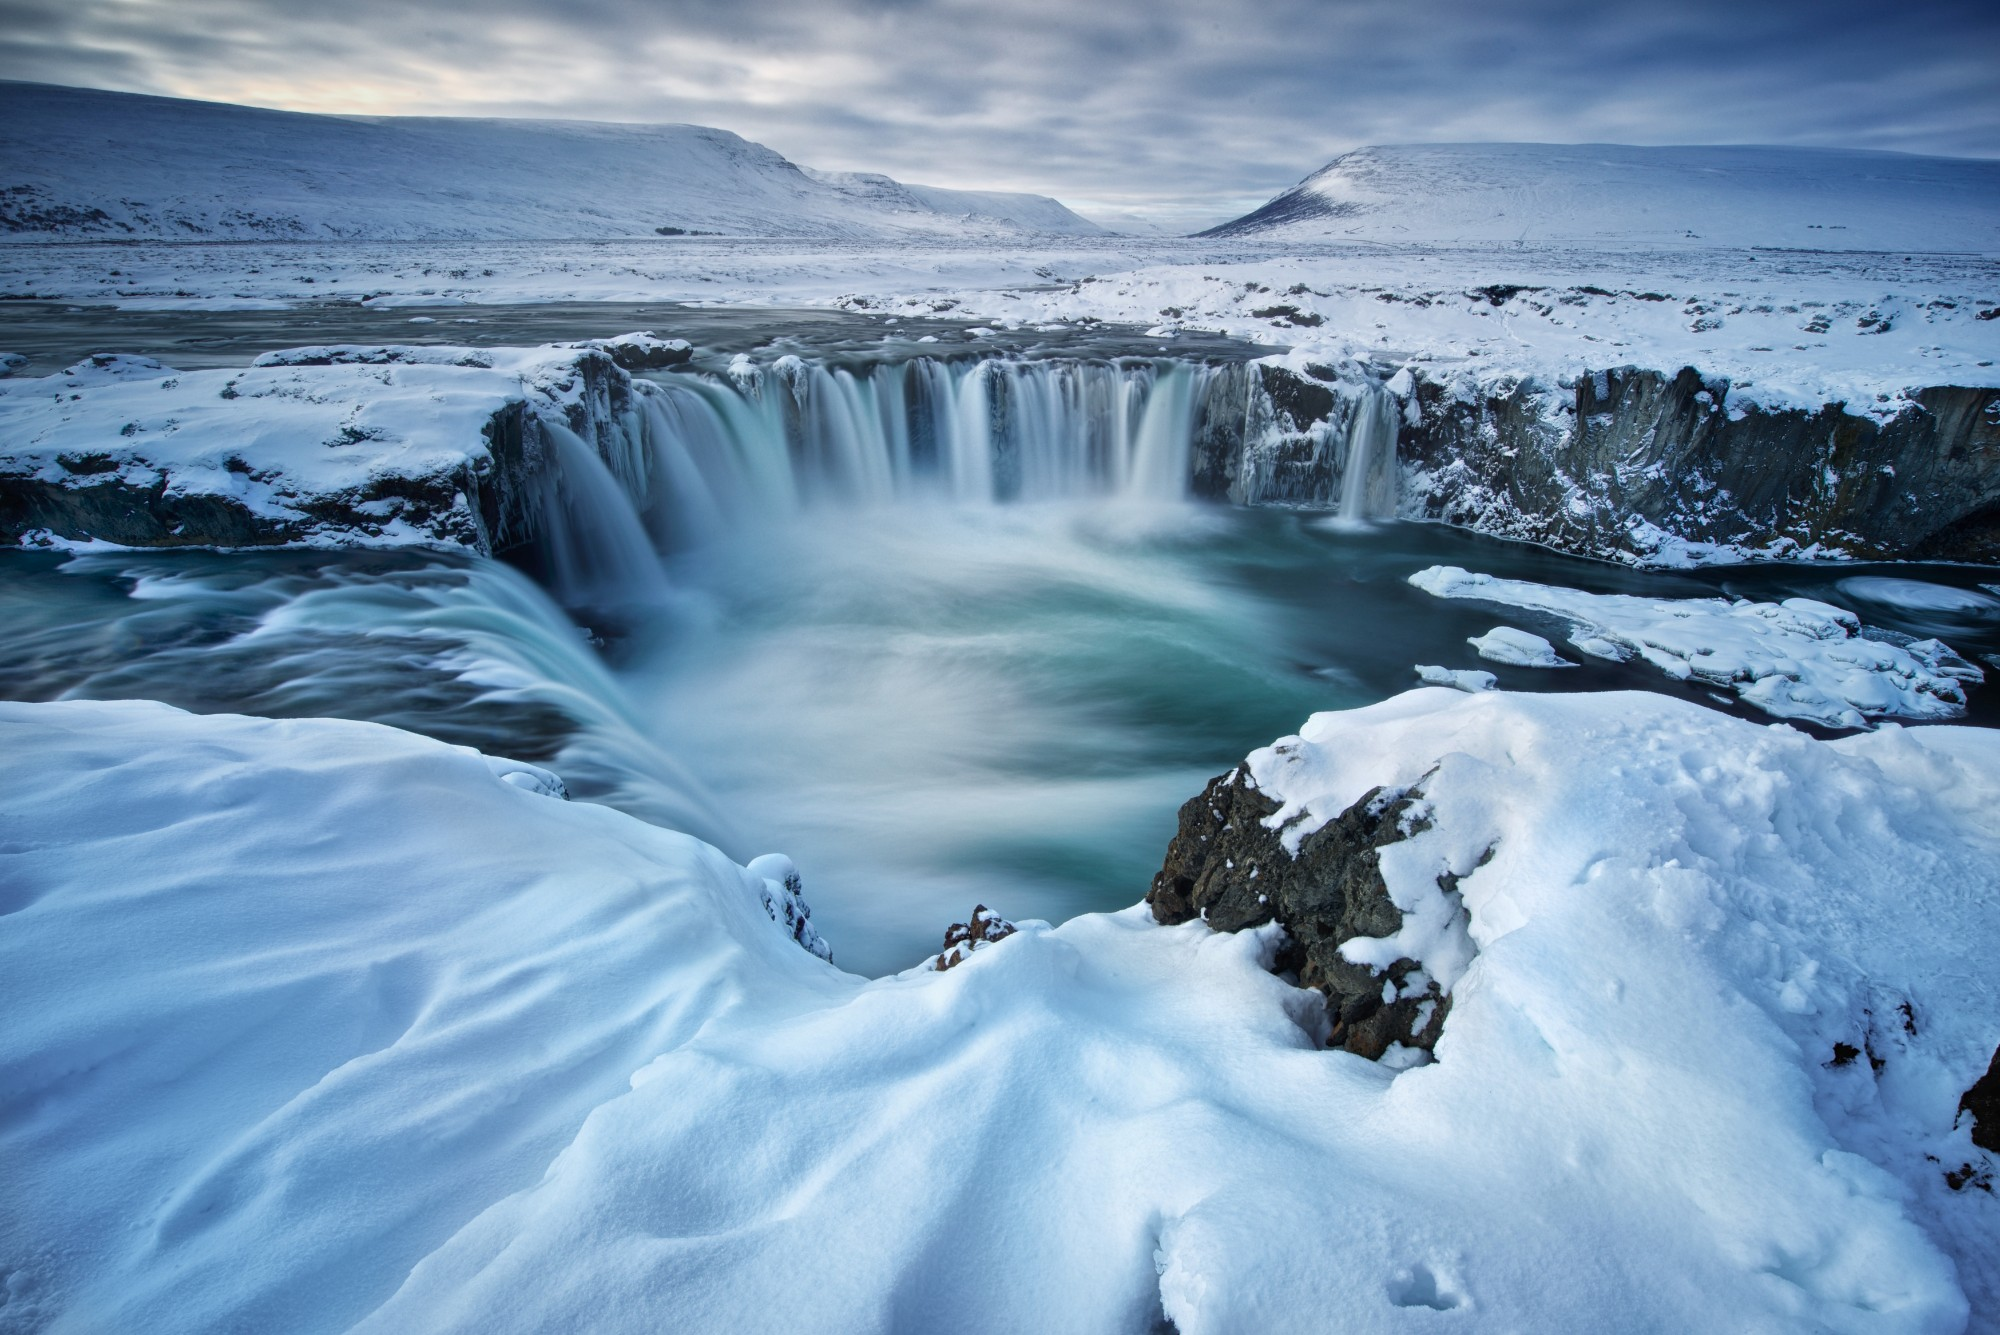 Goðafoss Waterfall under a blanket of snow